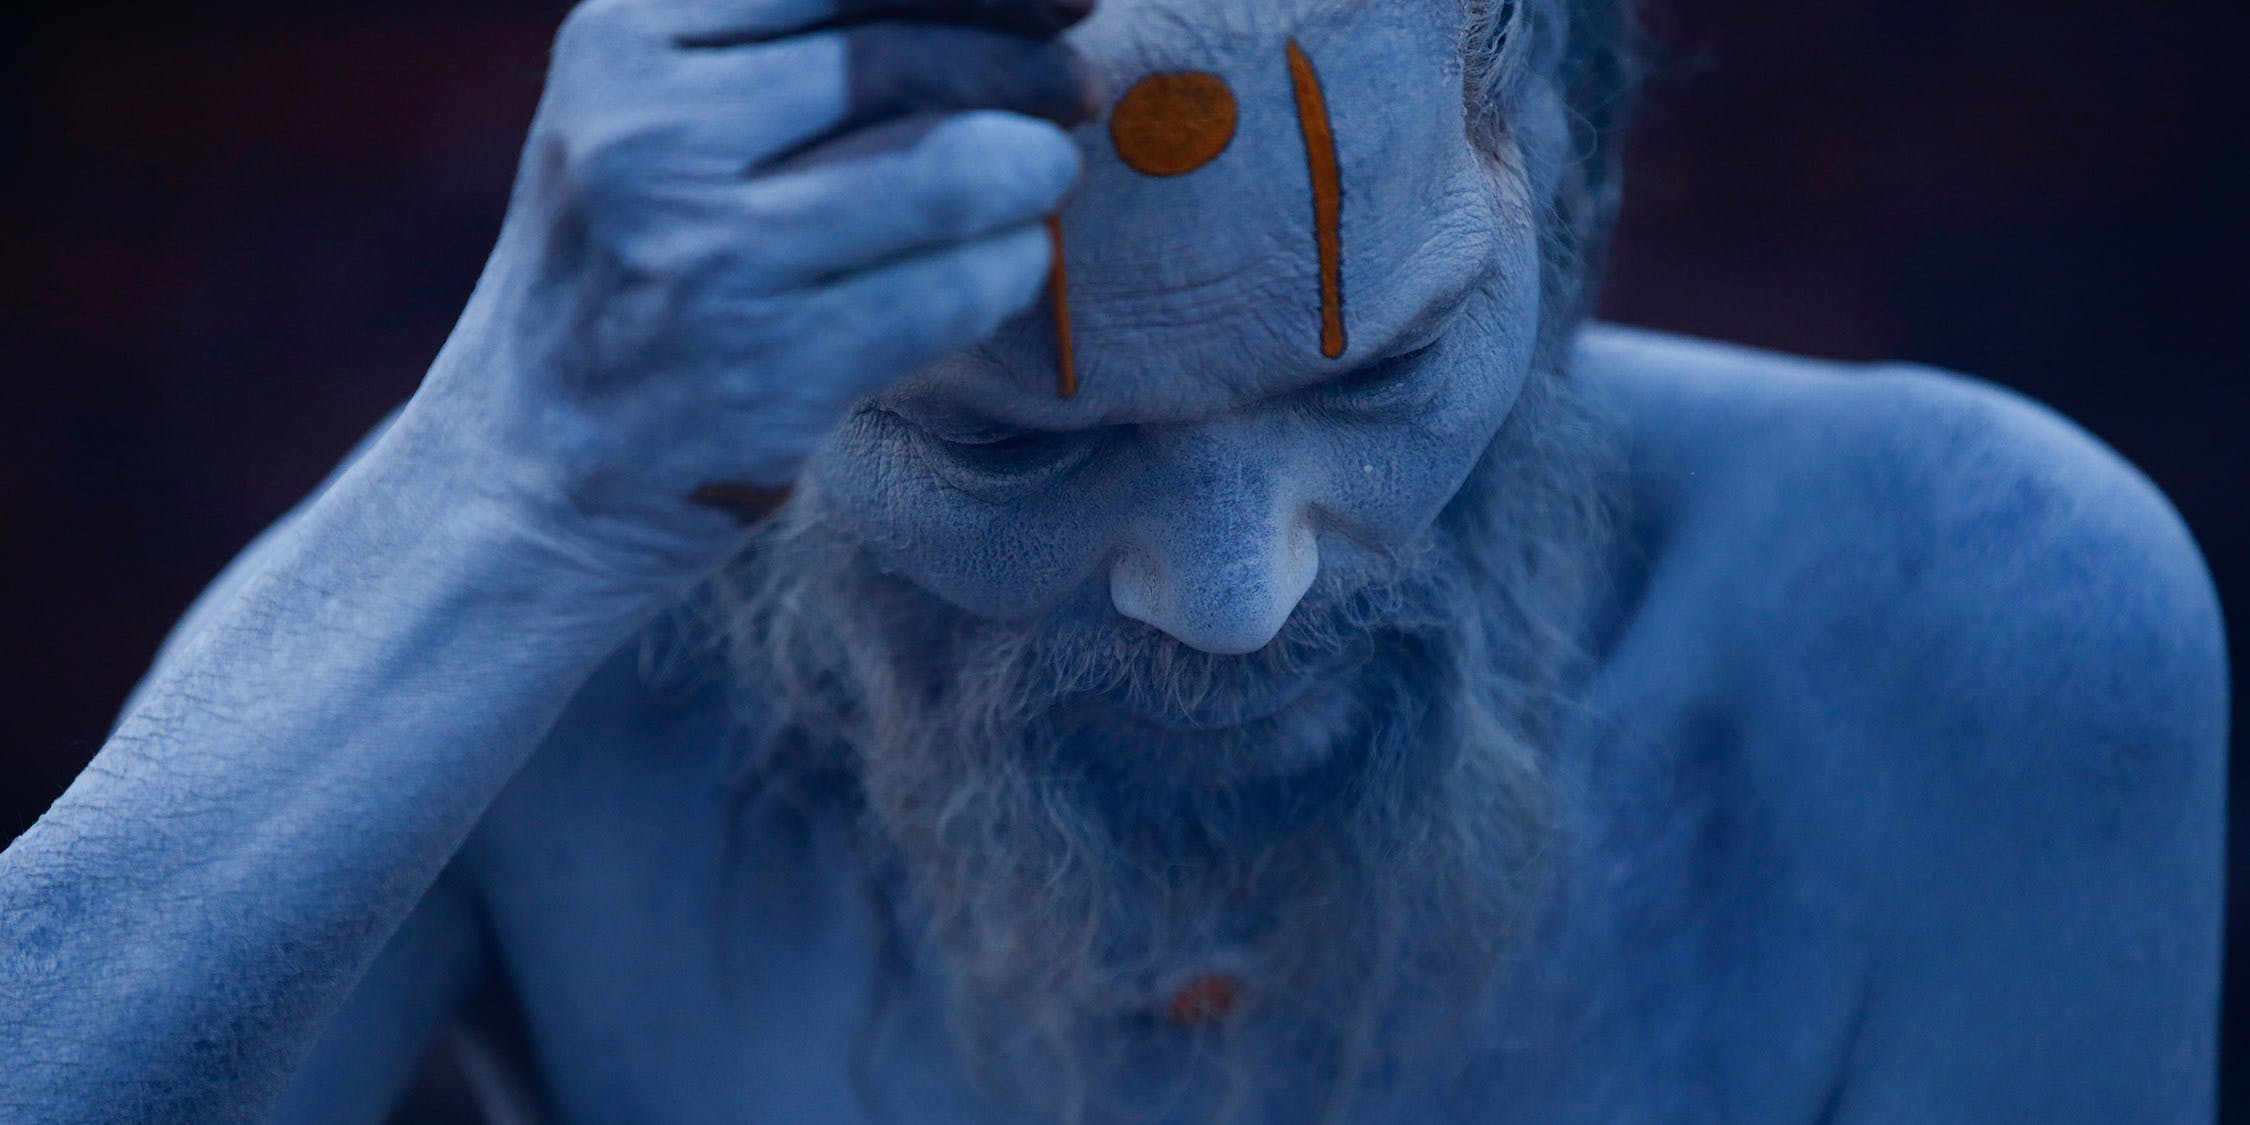 Maha Shivaratri: An Intimate Look At This Year's Hindu Festival In Nepal